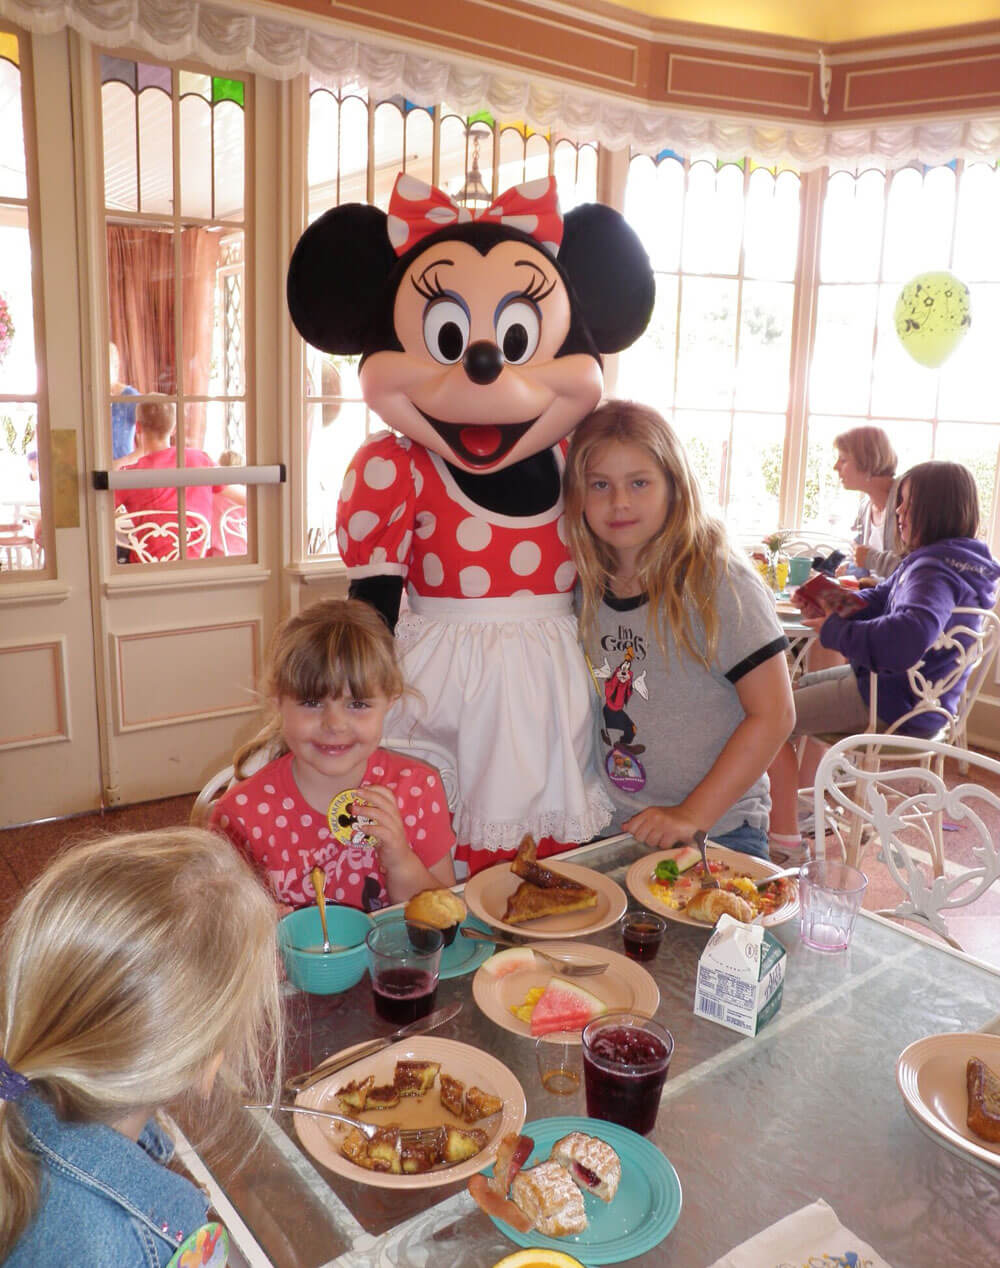 Breakfast at Disneyland - Minnie Character Breakfast at Plaza Inn